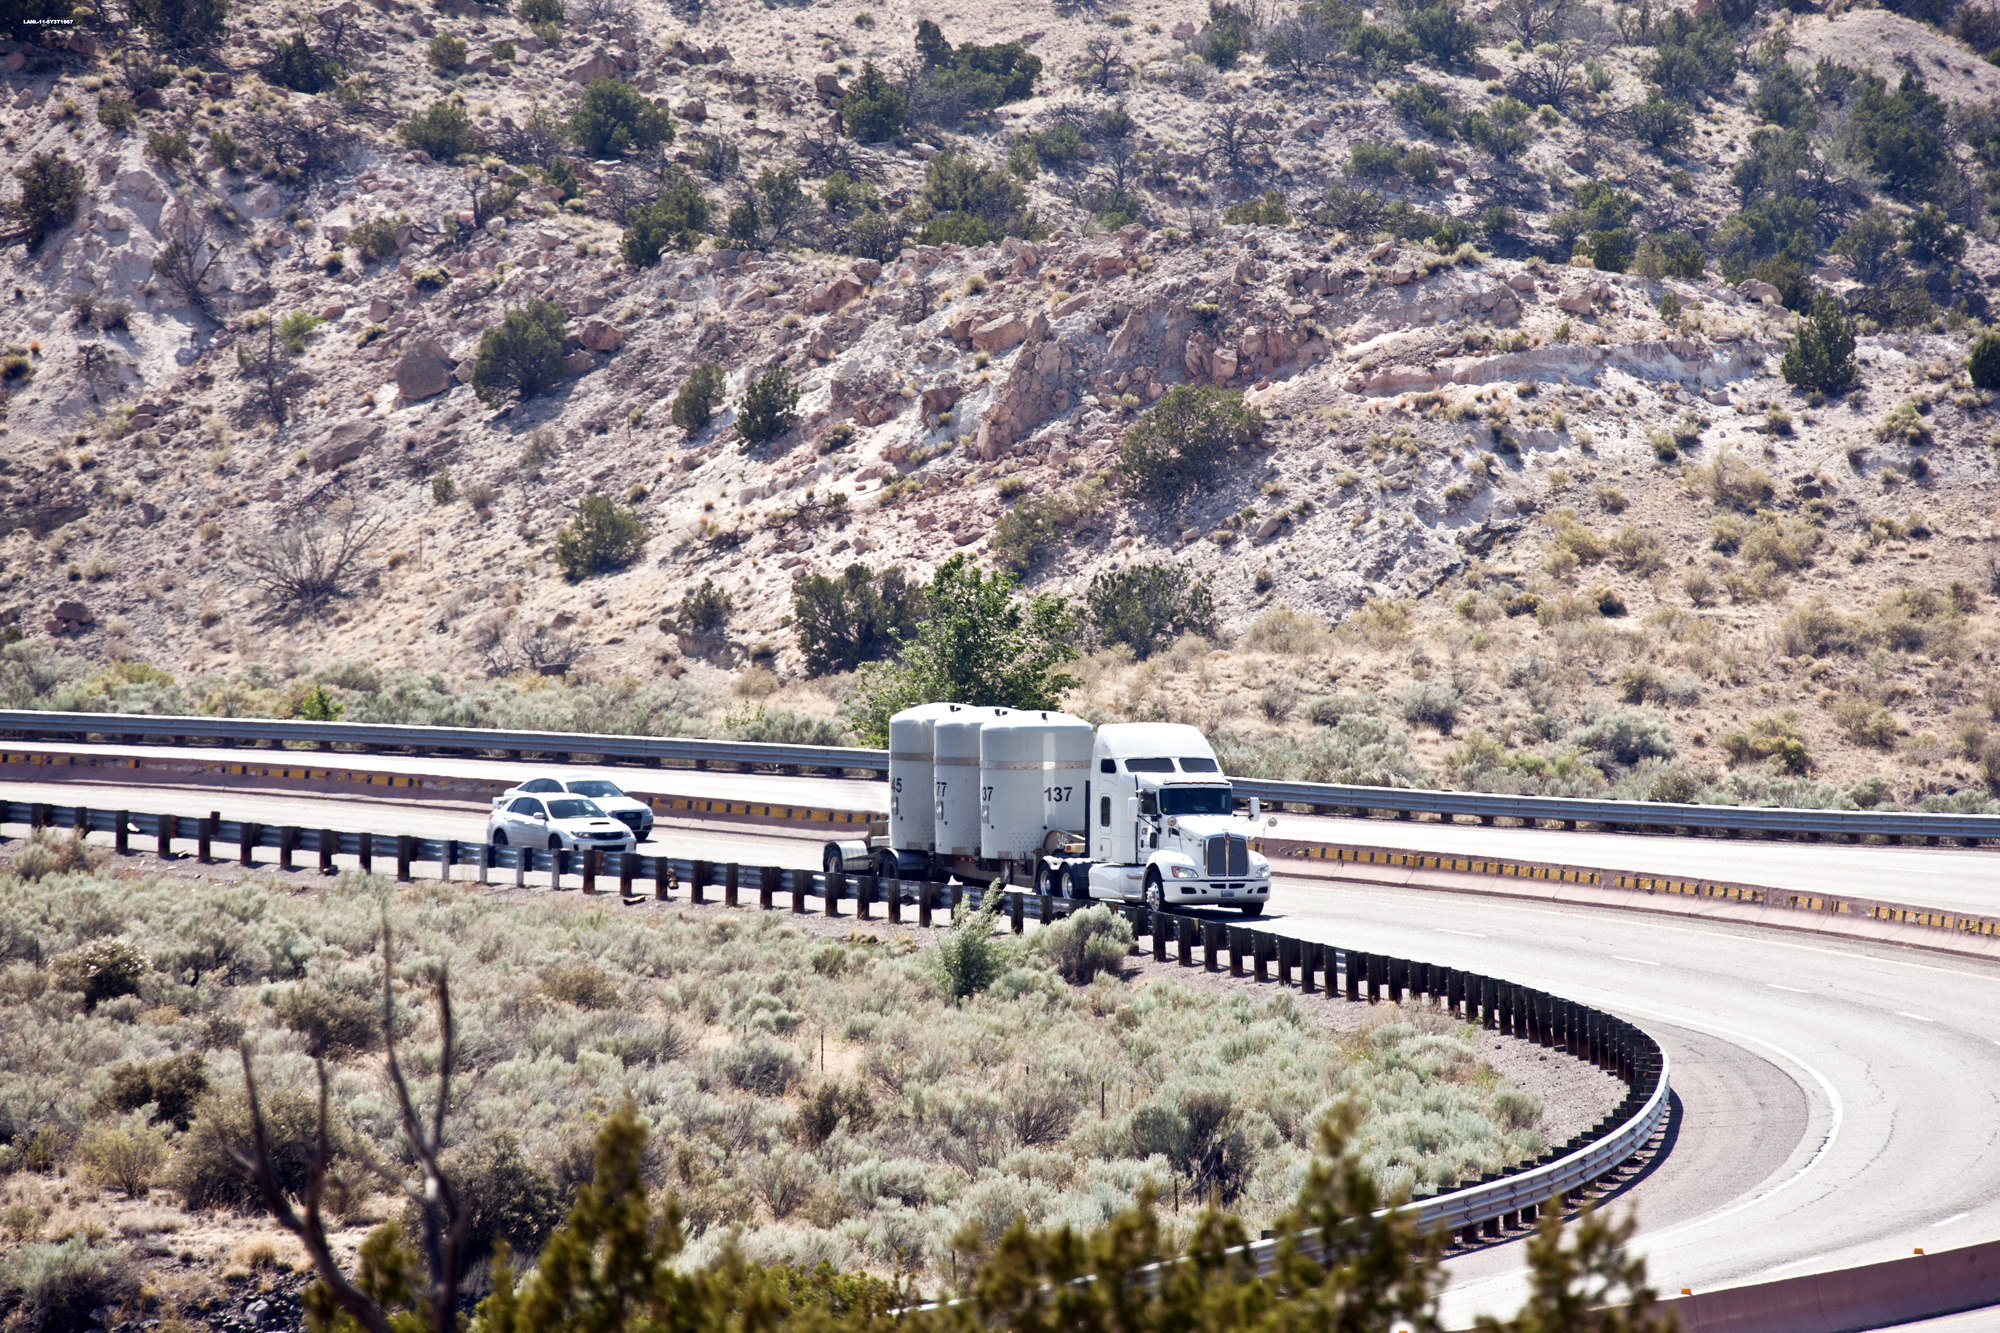 A shipment carrying Los Alamos transuranic waste headed to the Waste Isolation Pilot Plant in southeastern New Mexico.